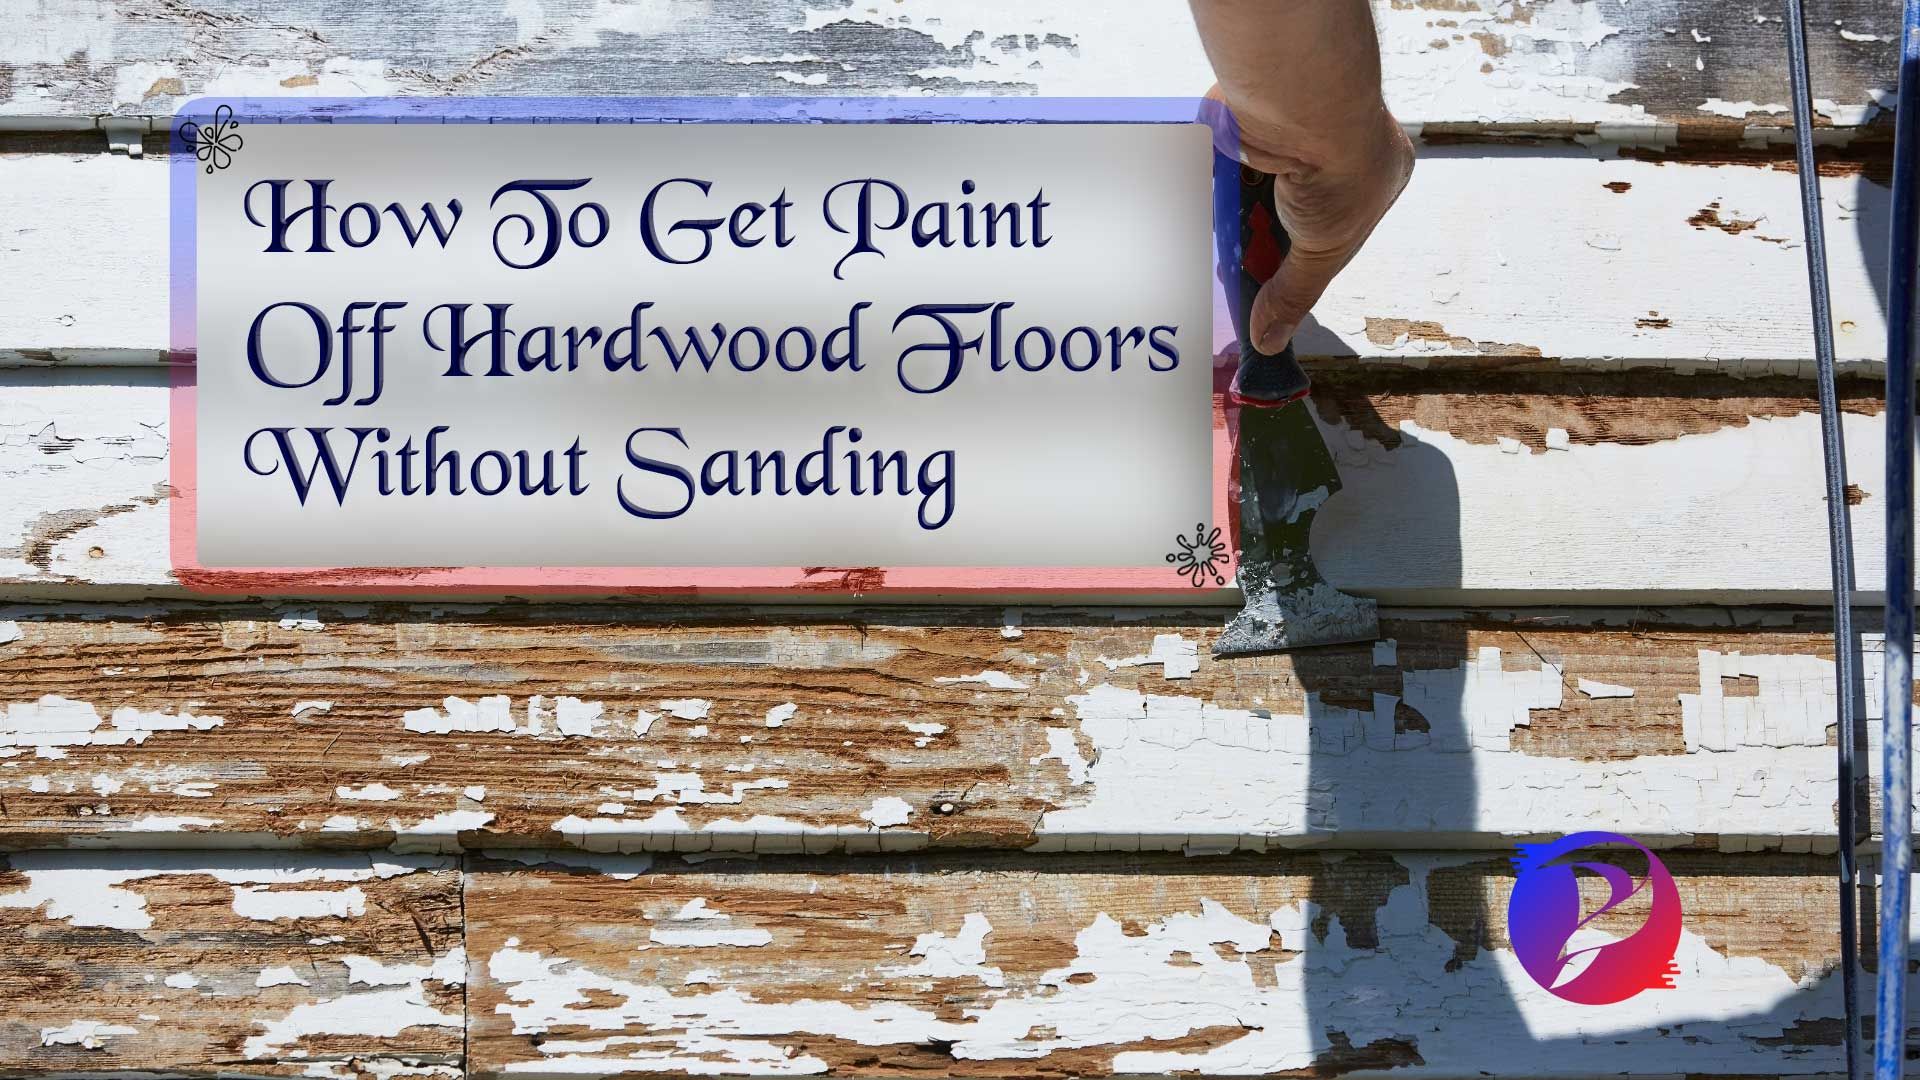 How To Get Paint Off Hardwood Floors Without Sanding